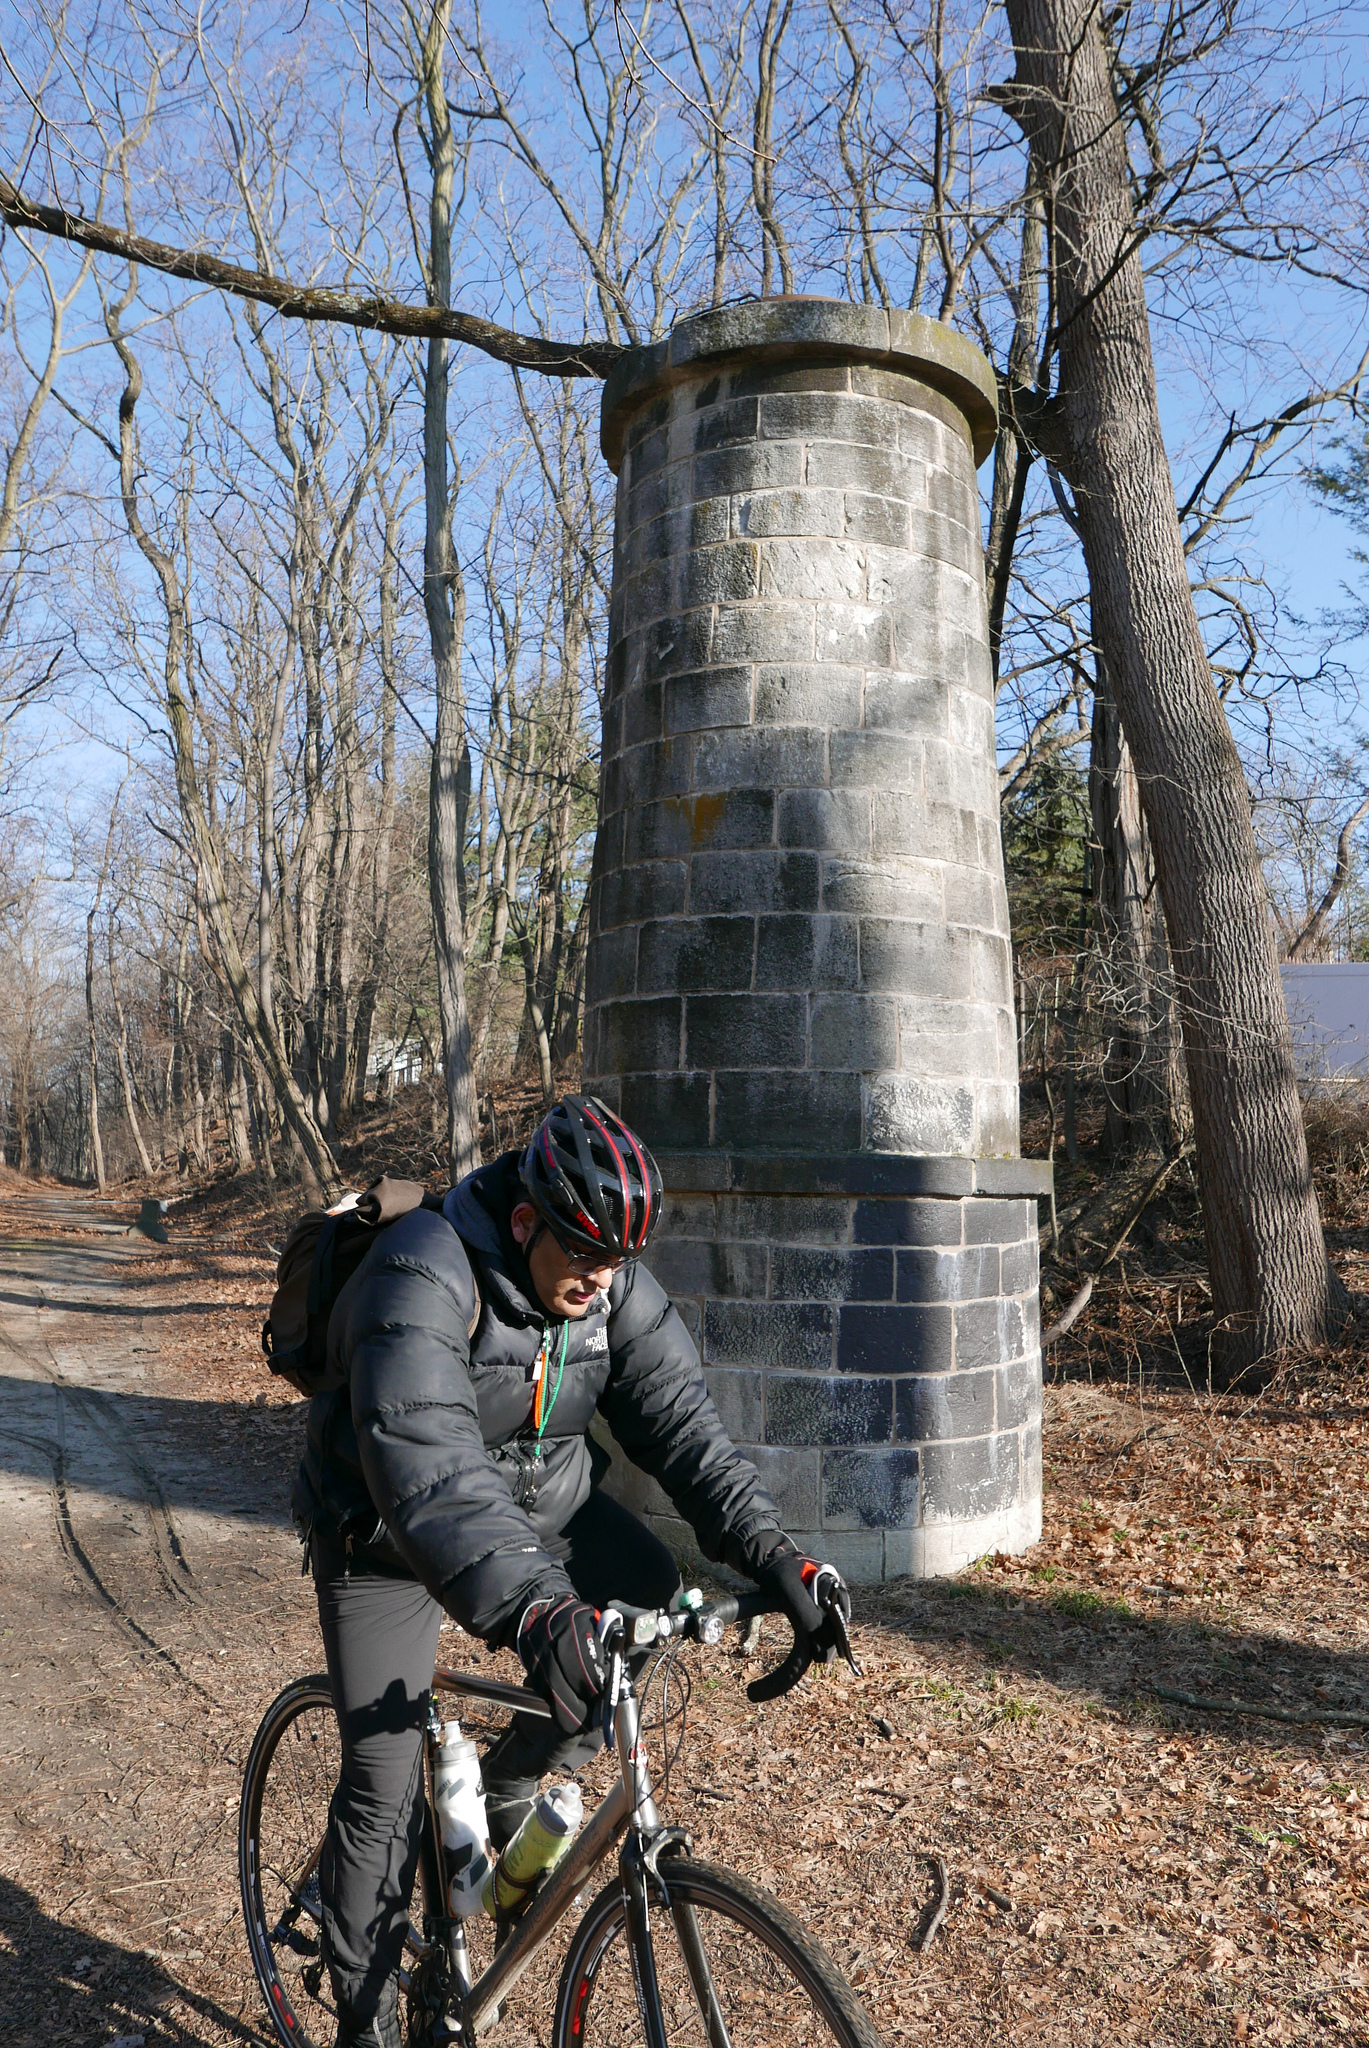 The OCA trail has these ventilation shafts every mile